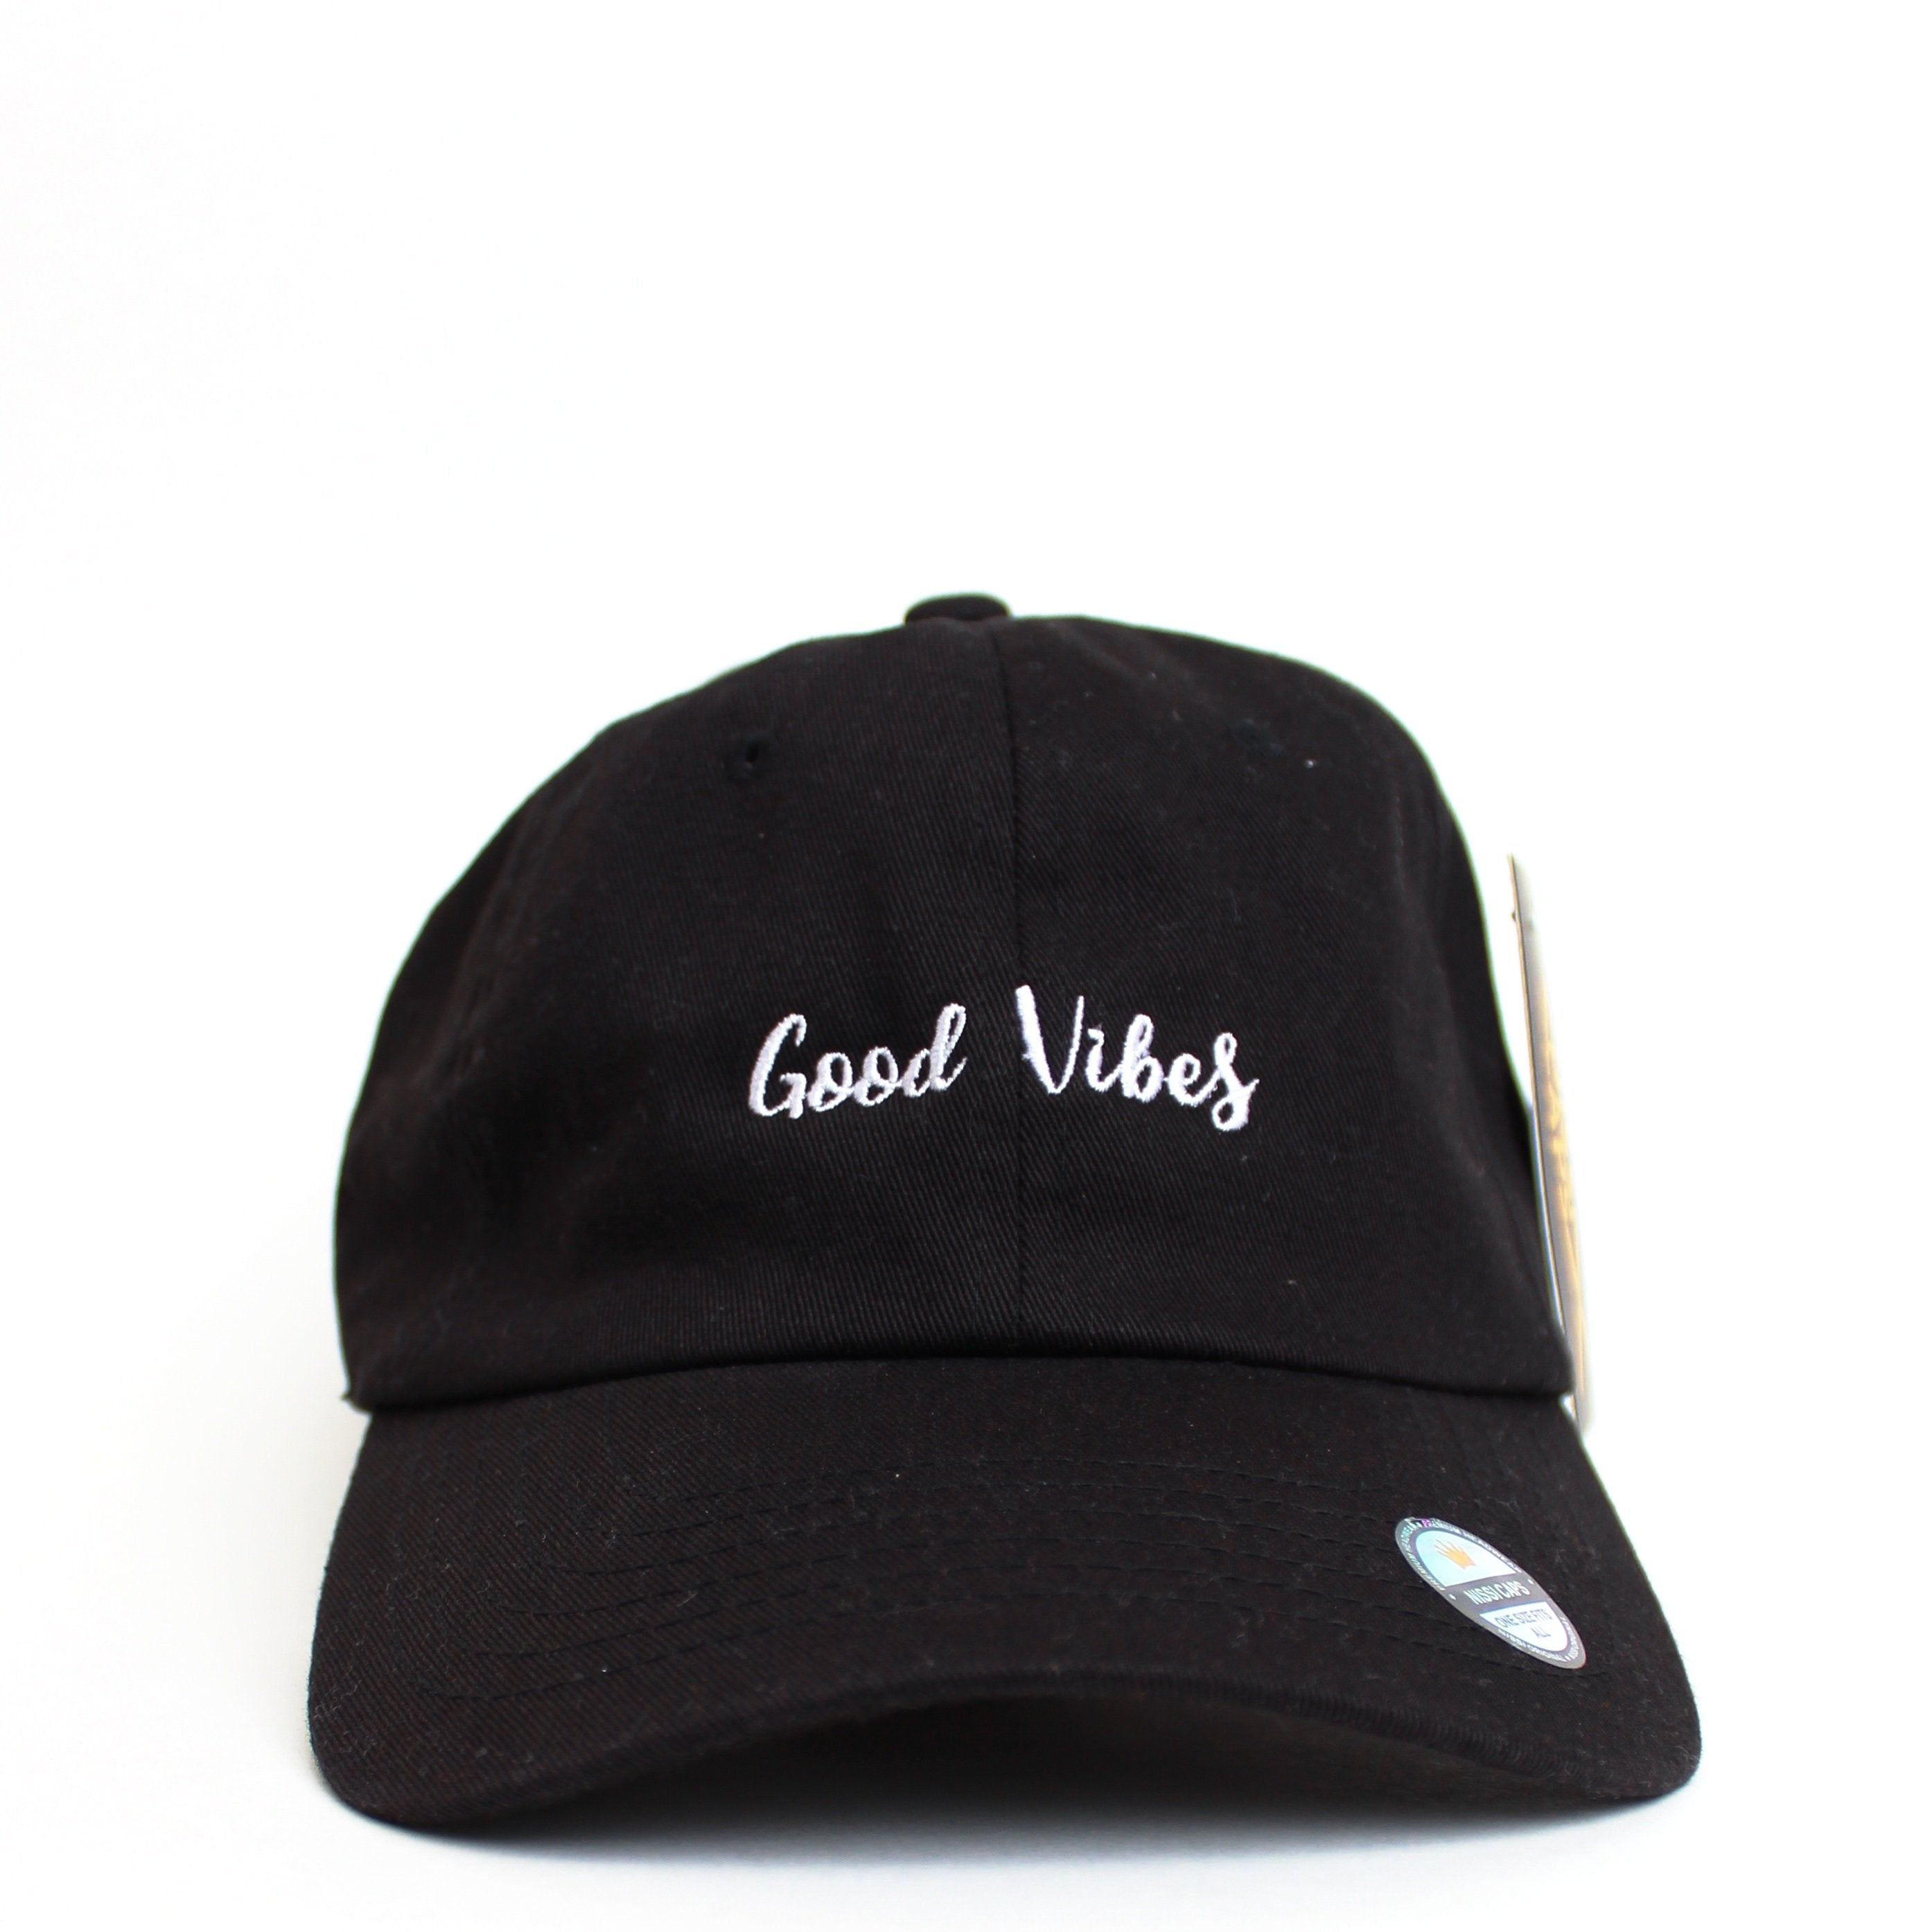 Good Vibes Cap